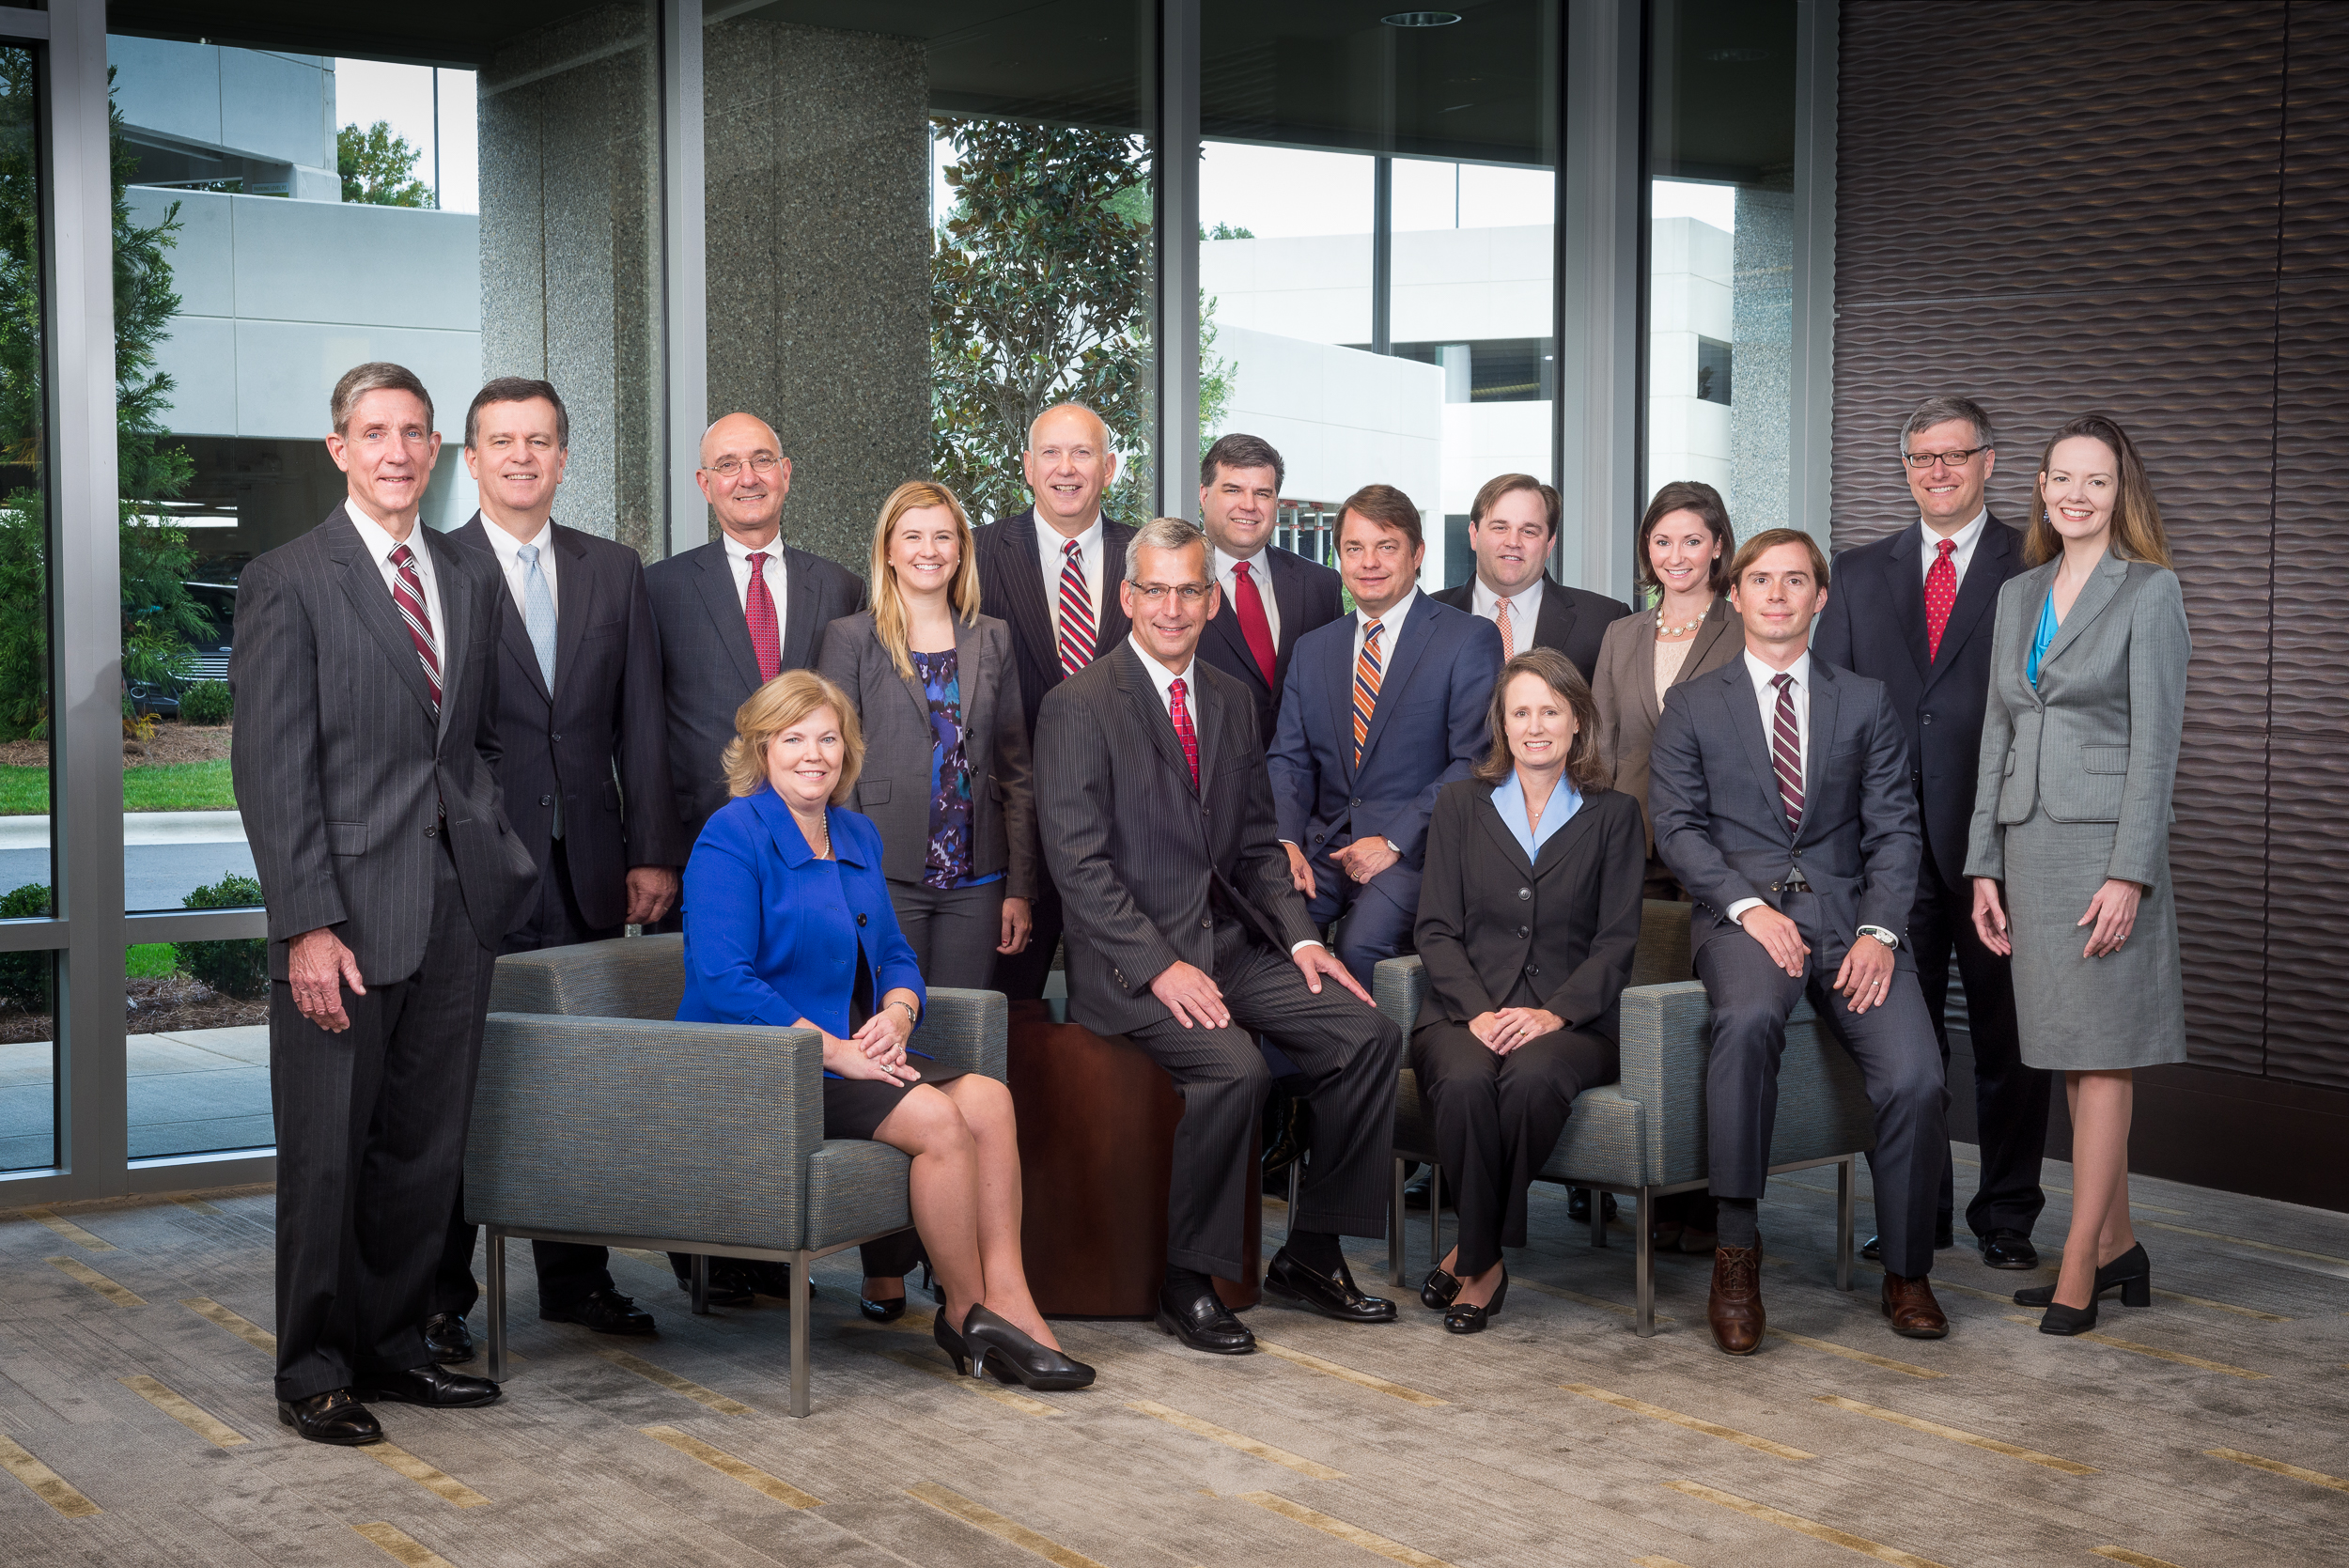 Corporate Group Photography for website, Raleigh, NC